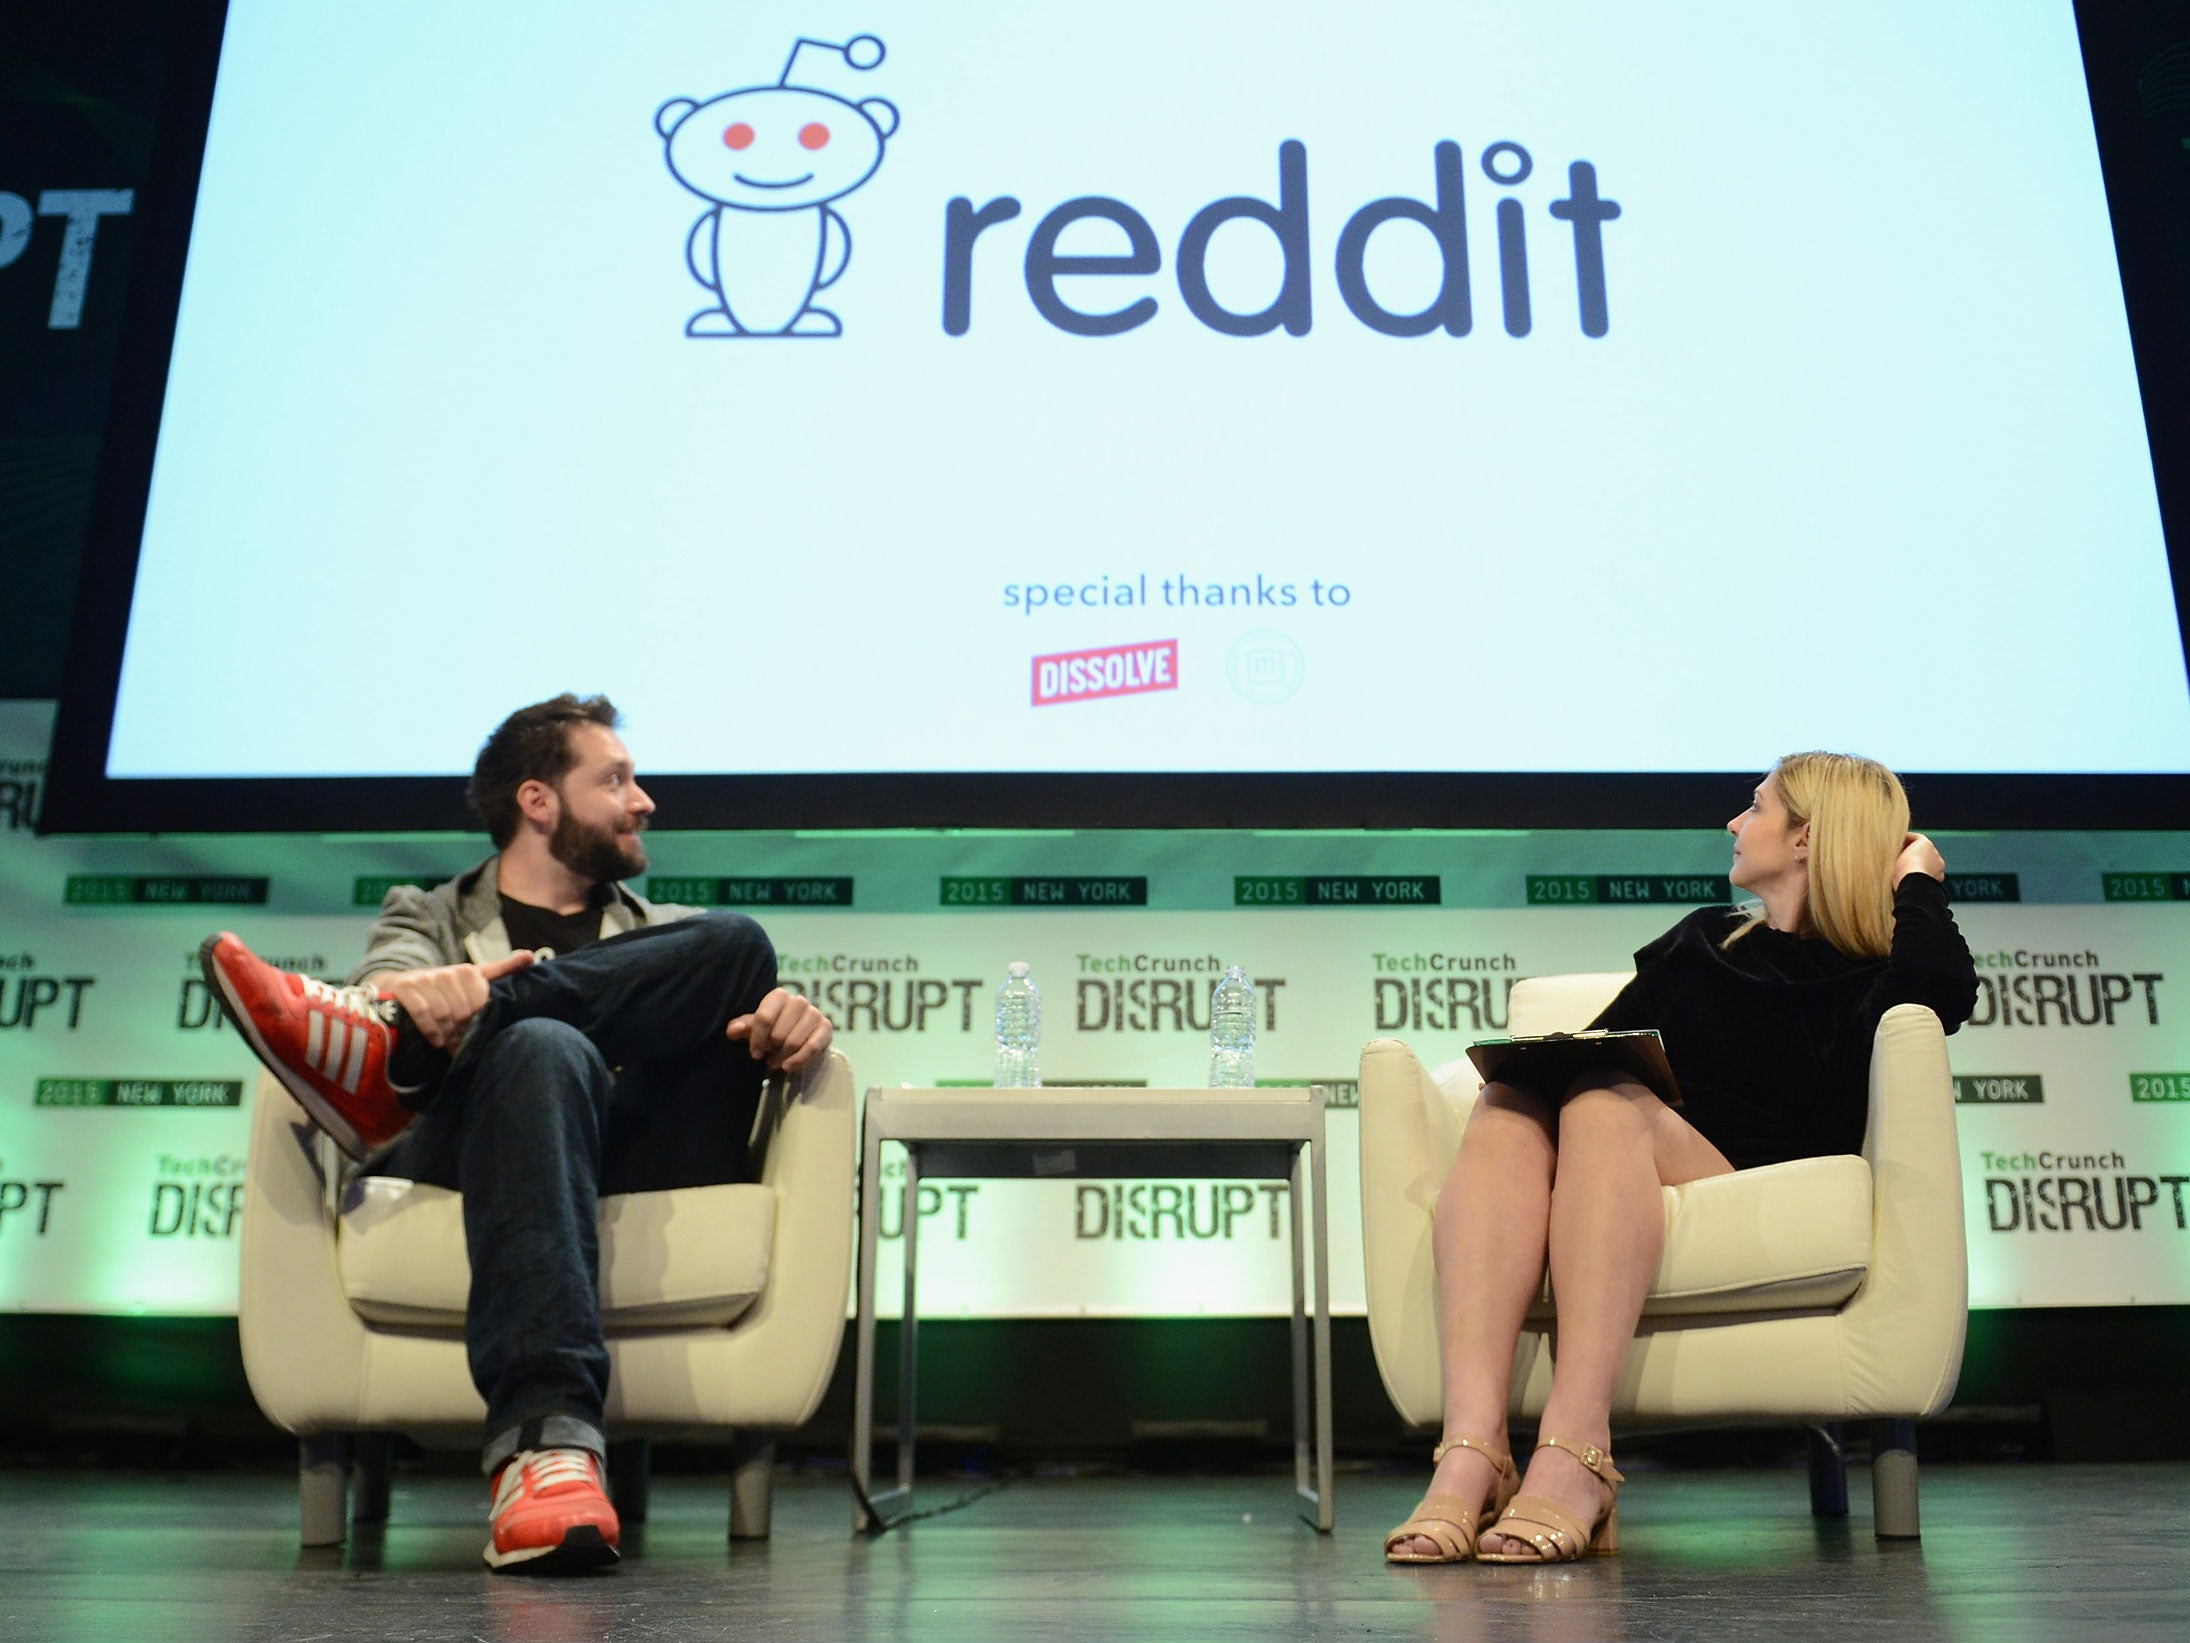 Reddit Begins Replacing Imgur With Its Own In House Image Hosting Service The Independent